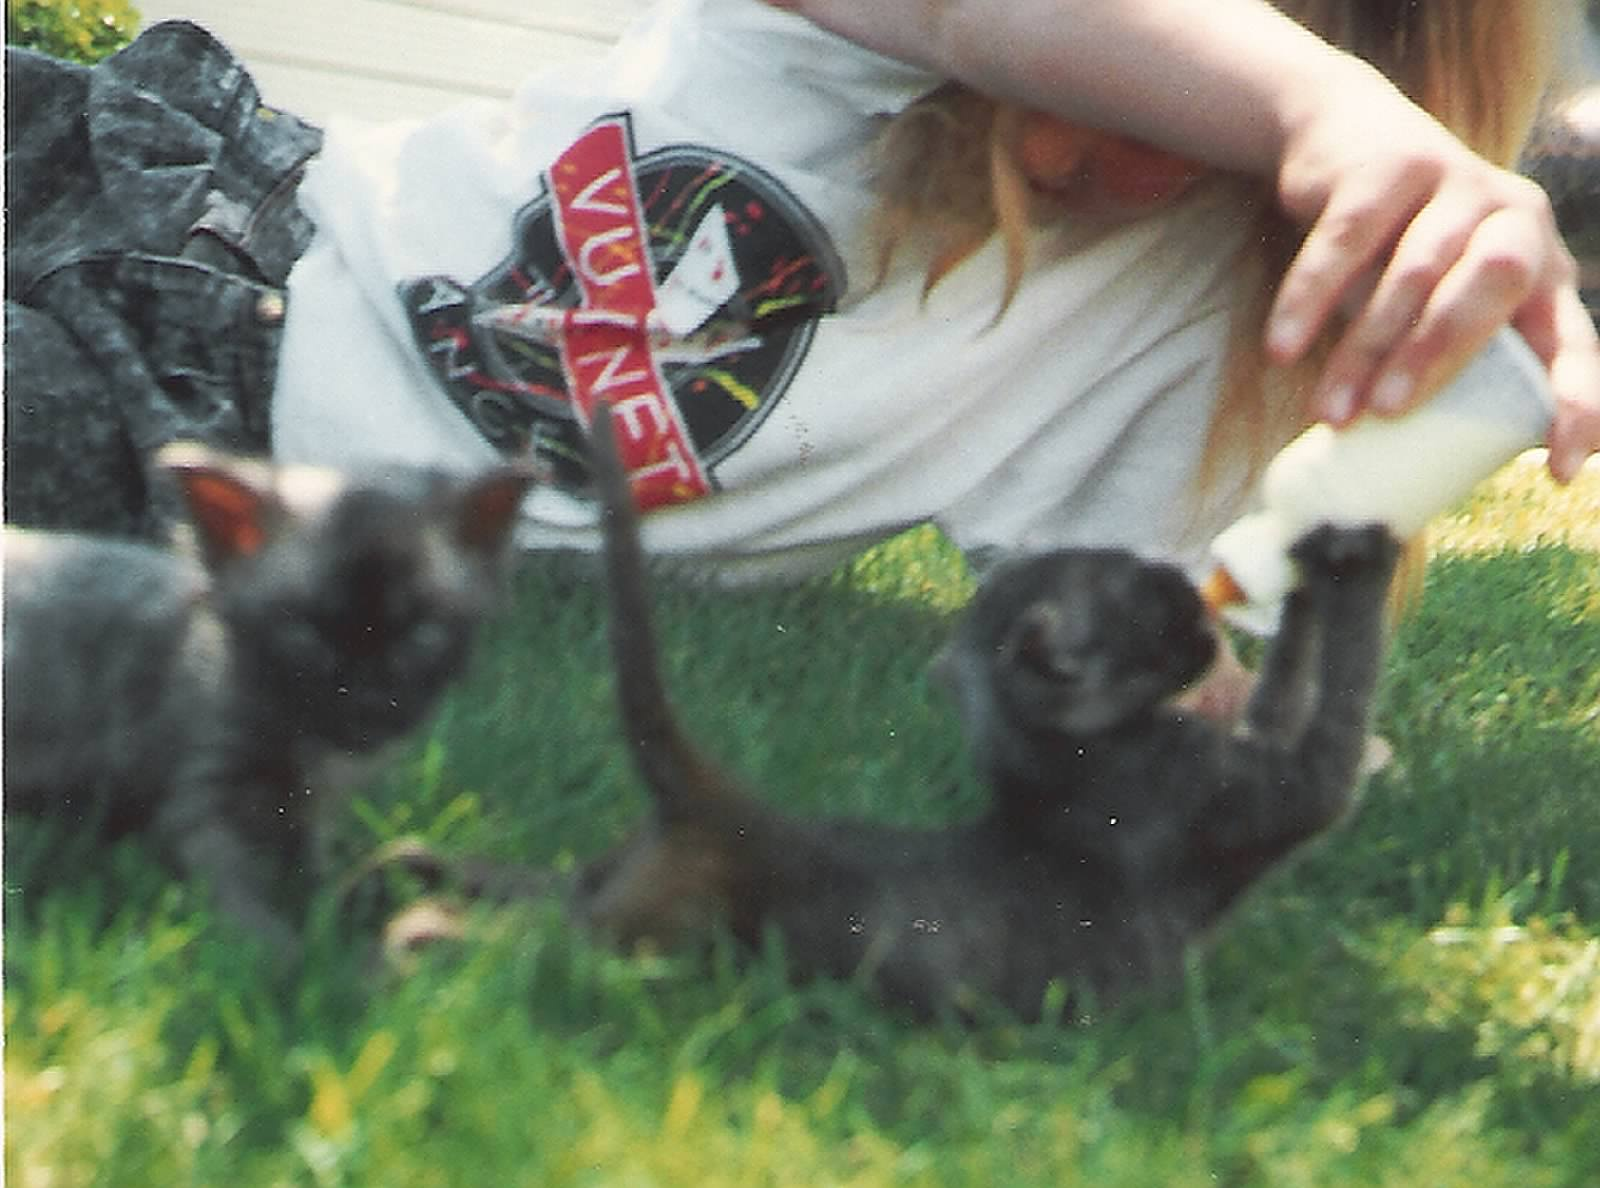 I was 13 when I bottle fed my first kittens. These little ones were abandoned and my mother found them while camping.